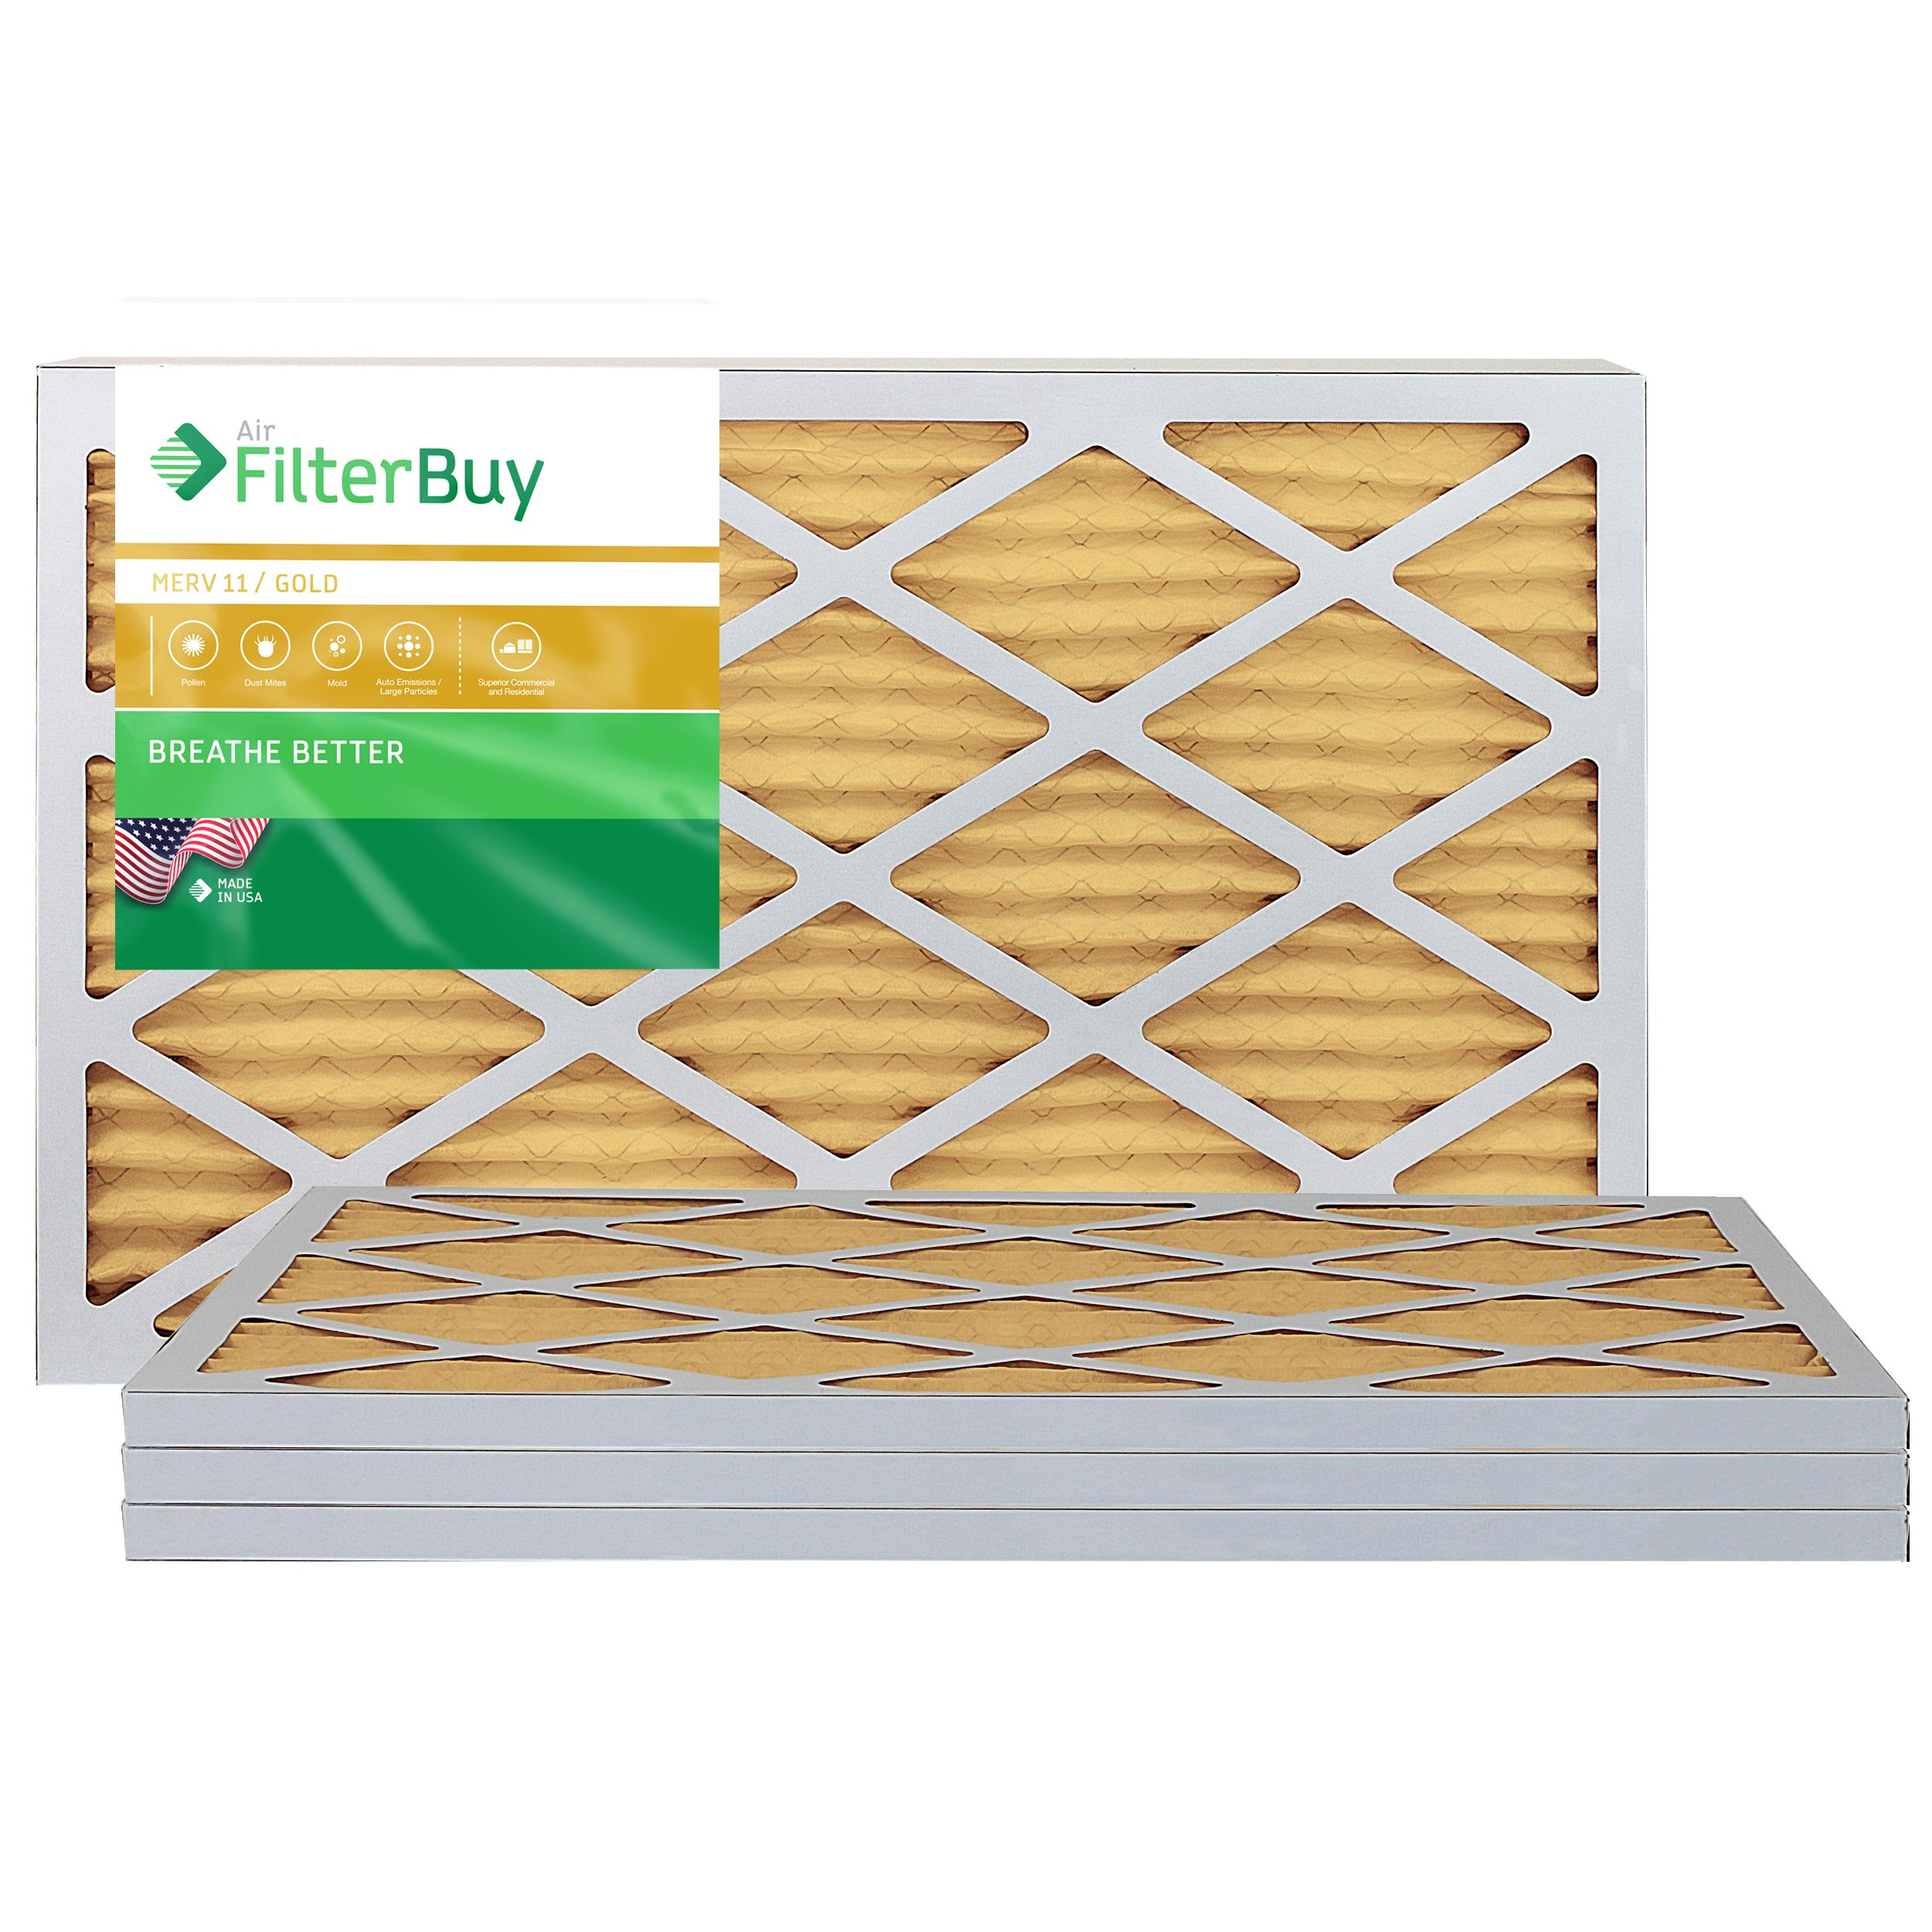 FilterBuy AFB Gold MERV 11 16x25x1 Pleated AC Furnace Air Filter, Pack of 4